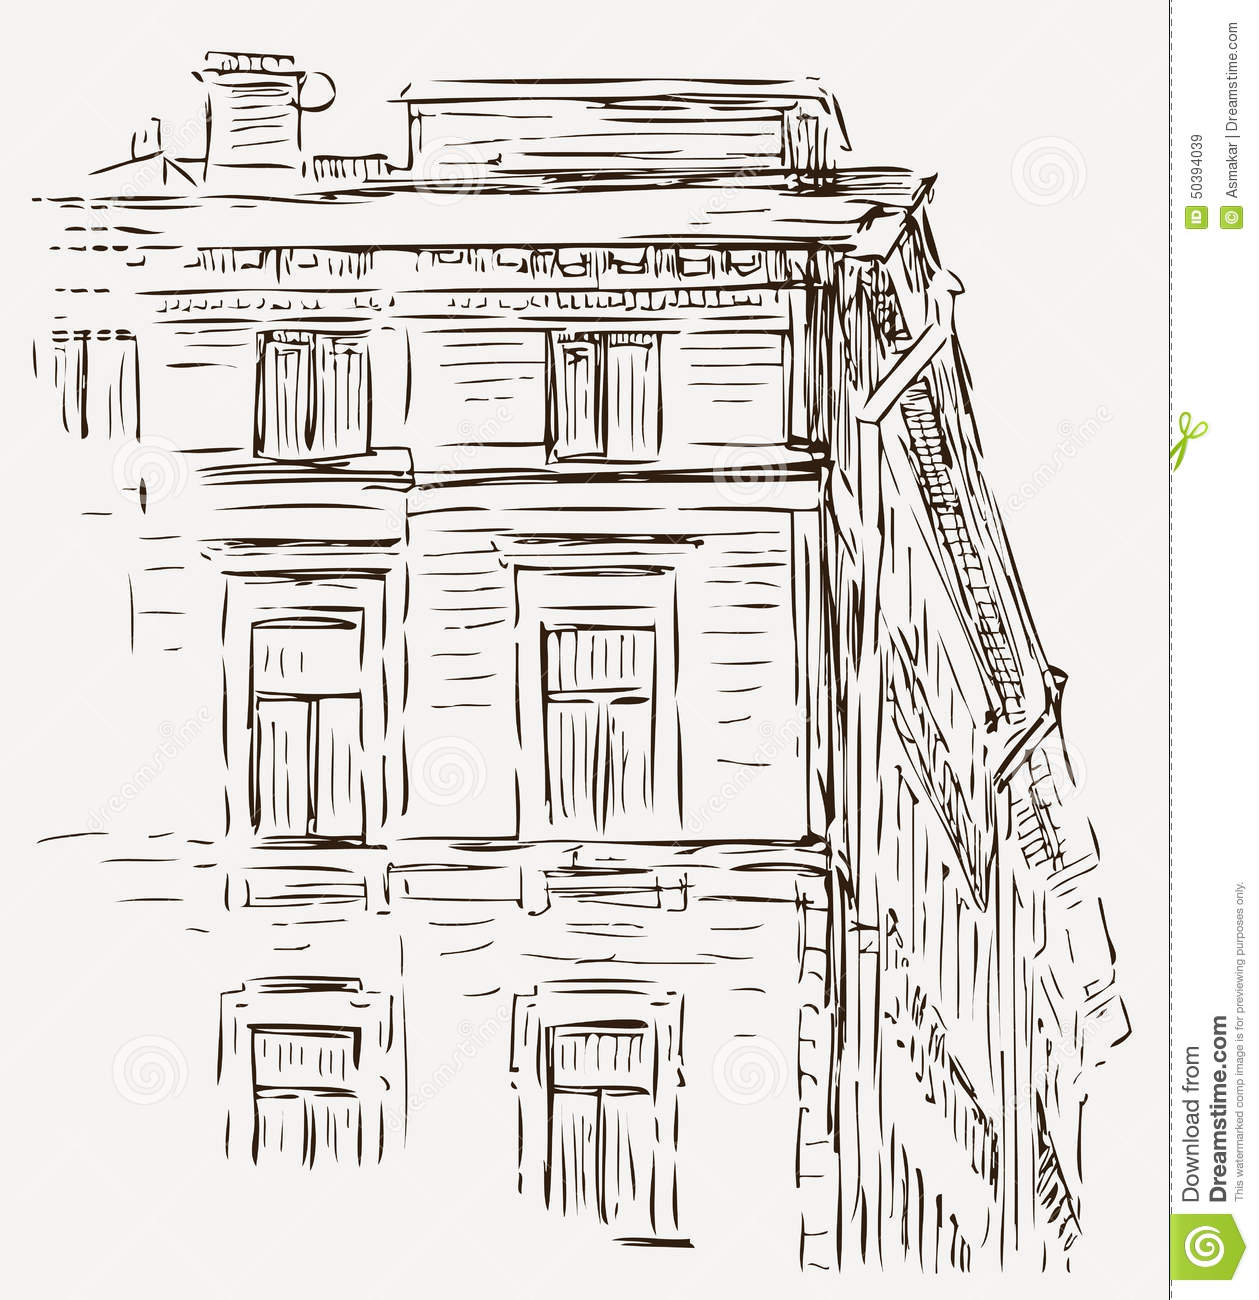 croquis d 39 une maison illustration de vecteur illustration